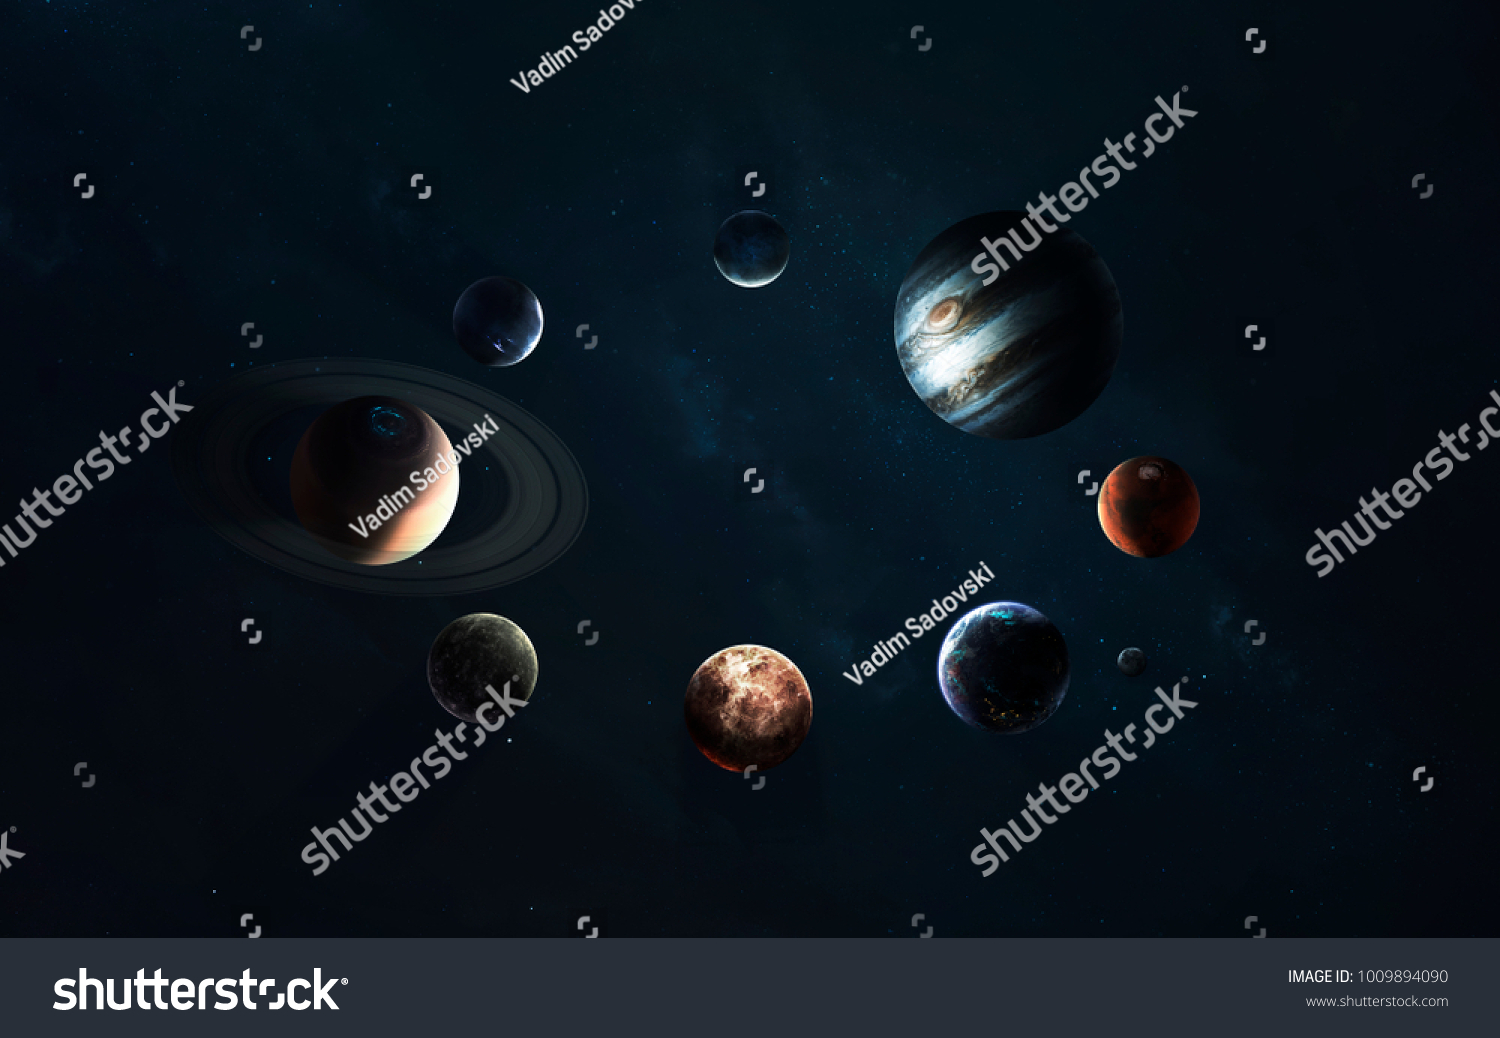 Solar System Symbol Space Exploration Elements Stock Photo Edit Now